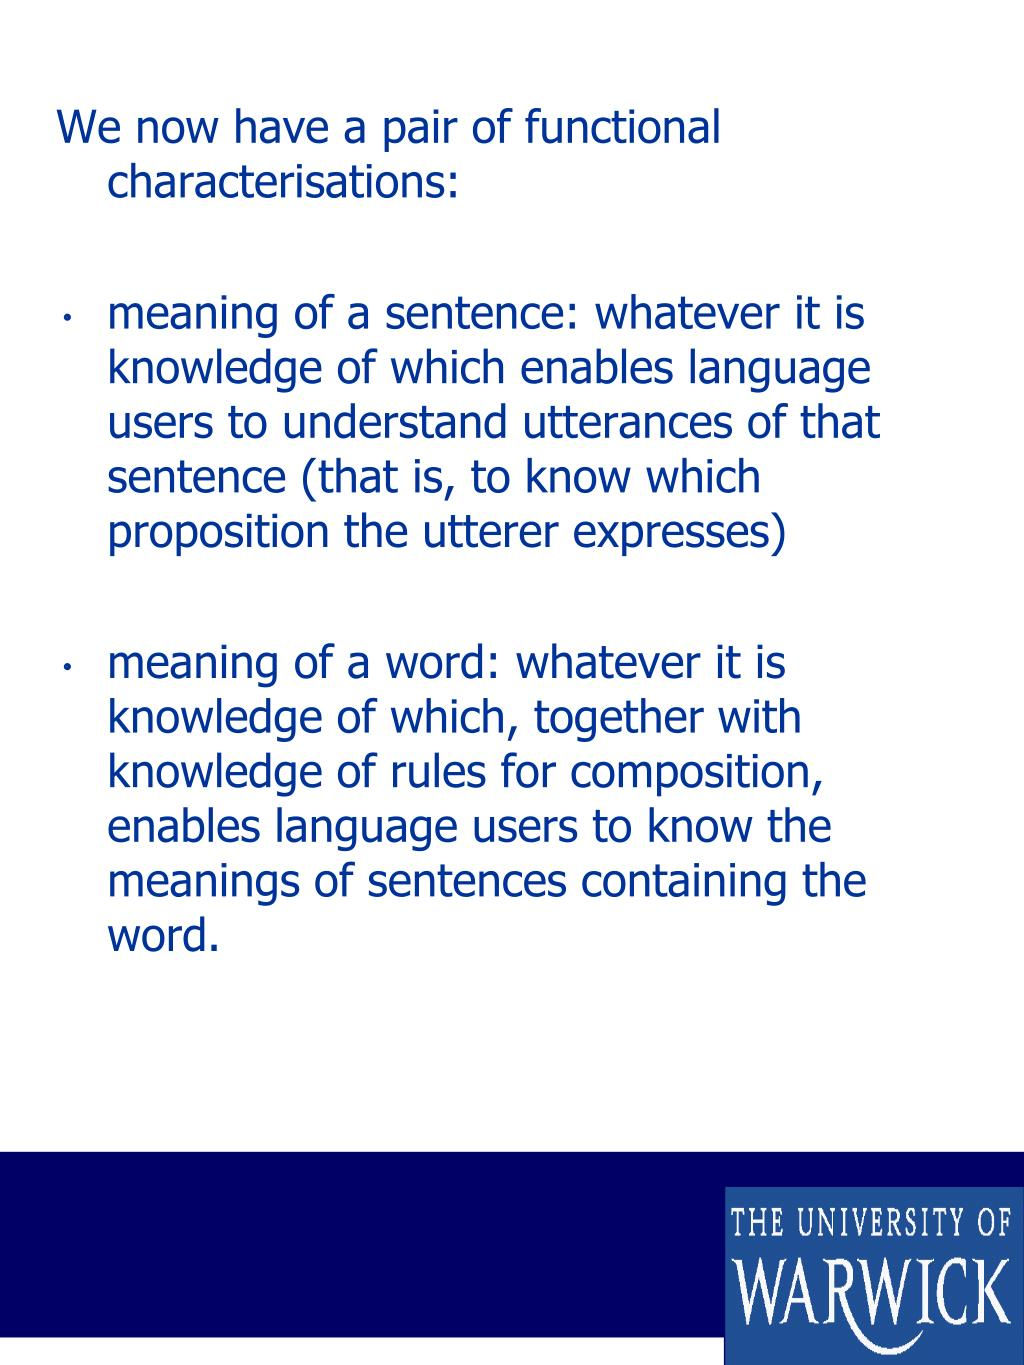 PPT - What makes communication by language possible